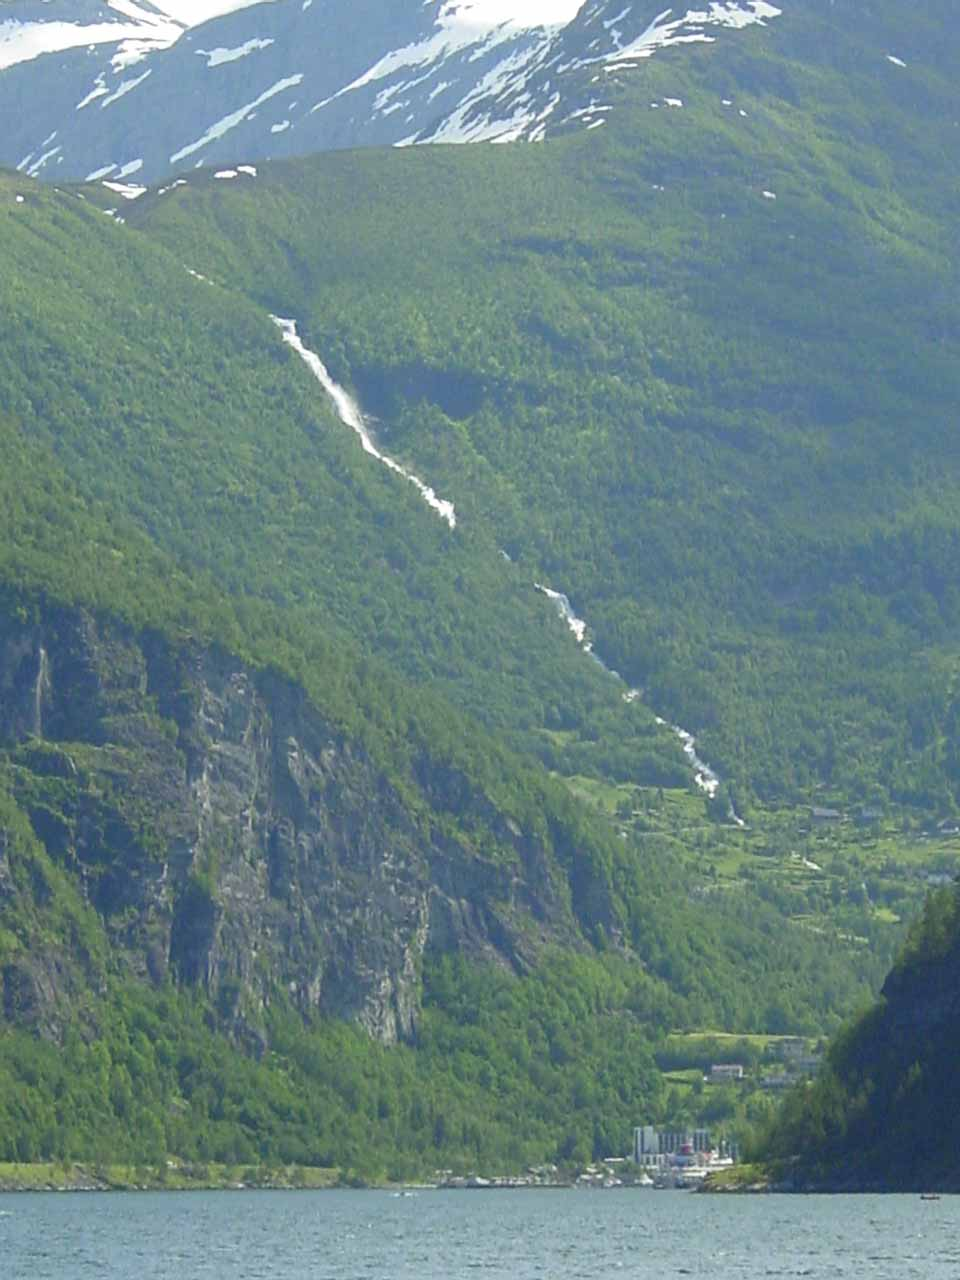 This tall cascade was Grinddalsfossen, which towered well above Geiranger